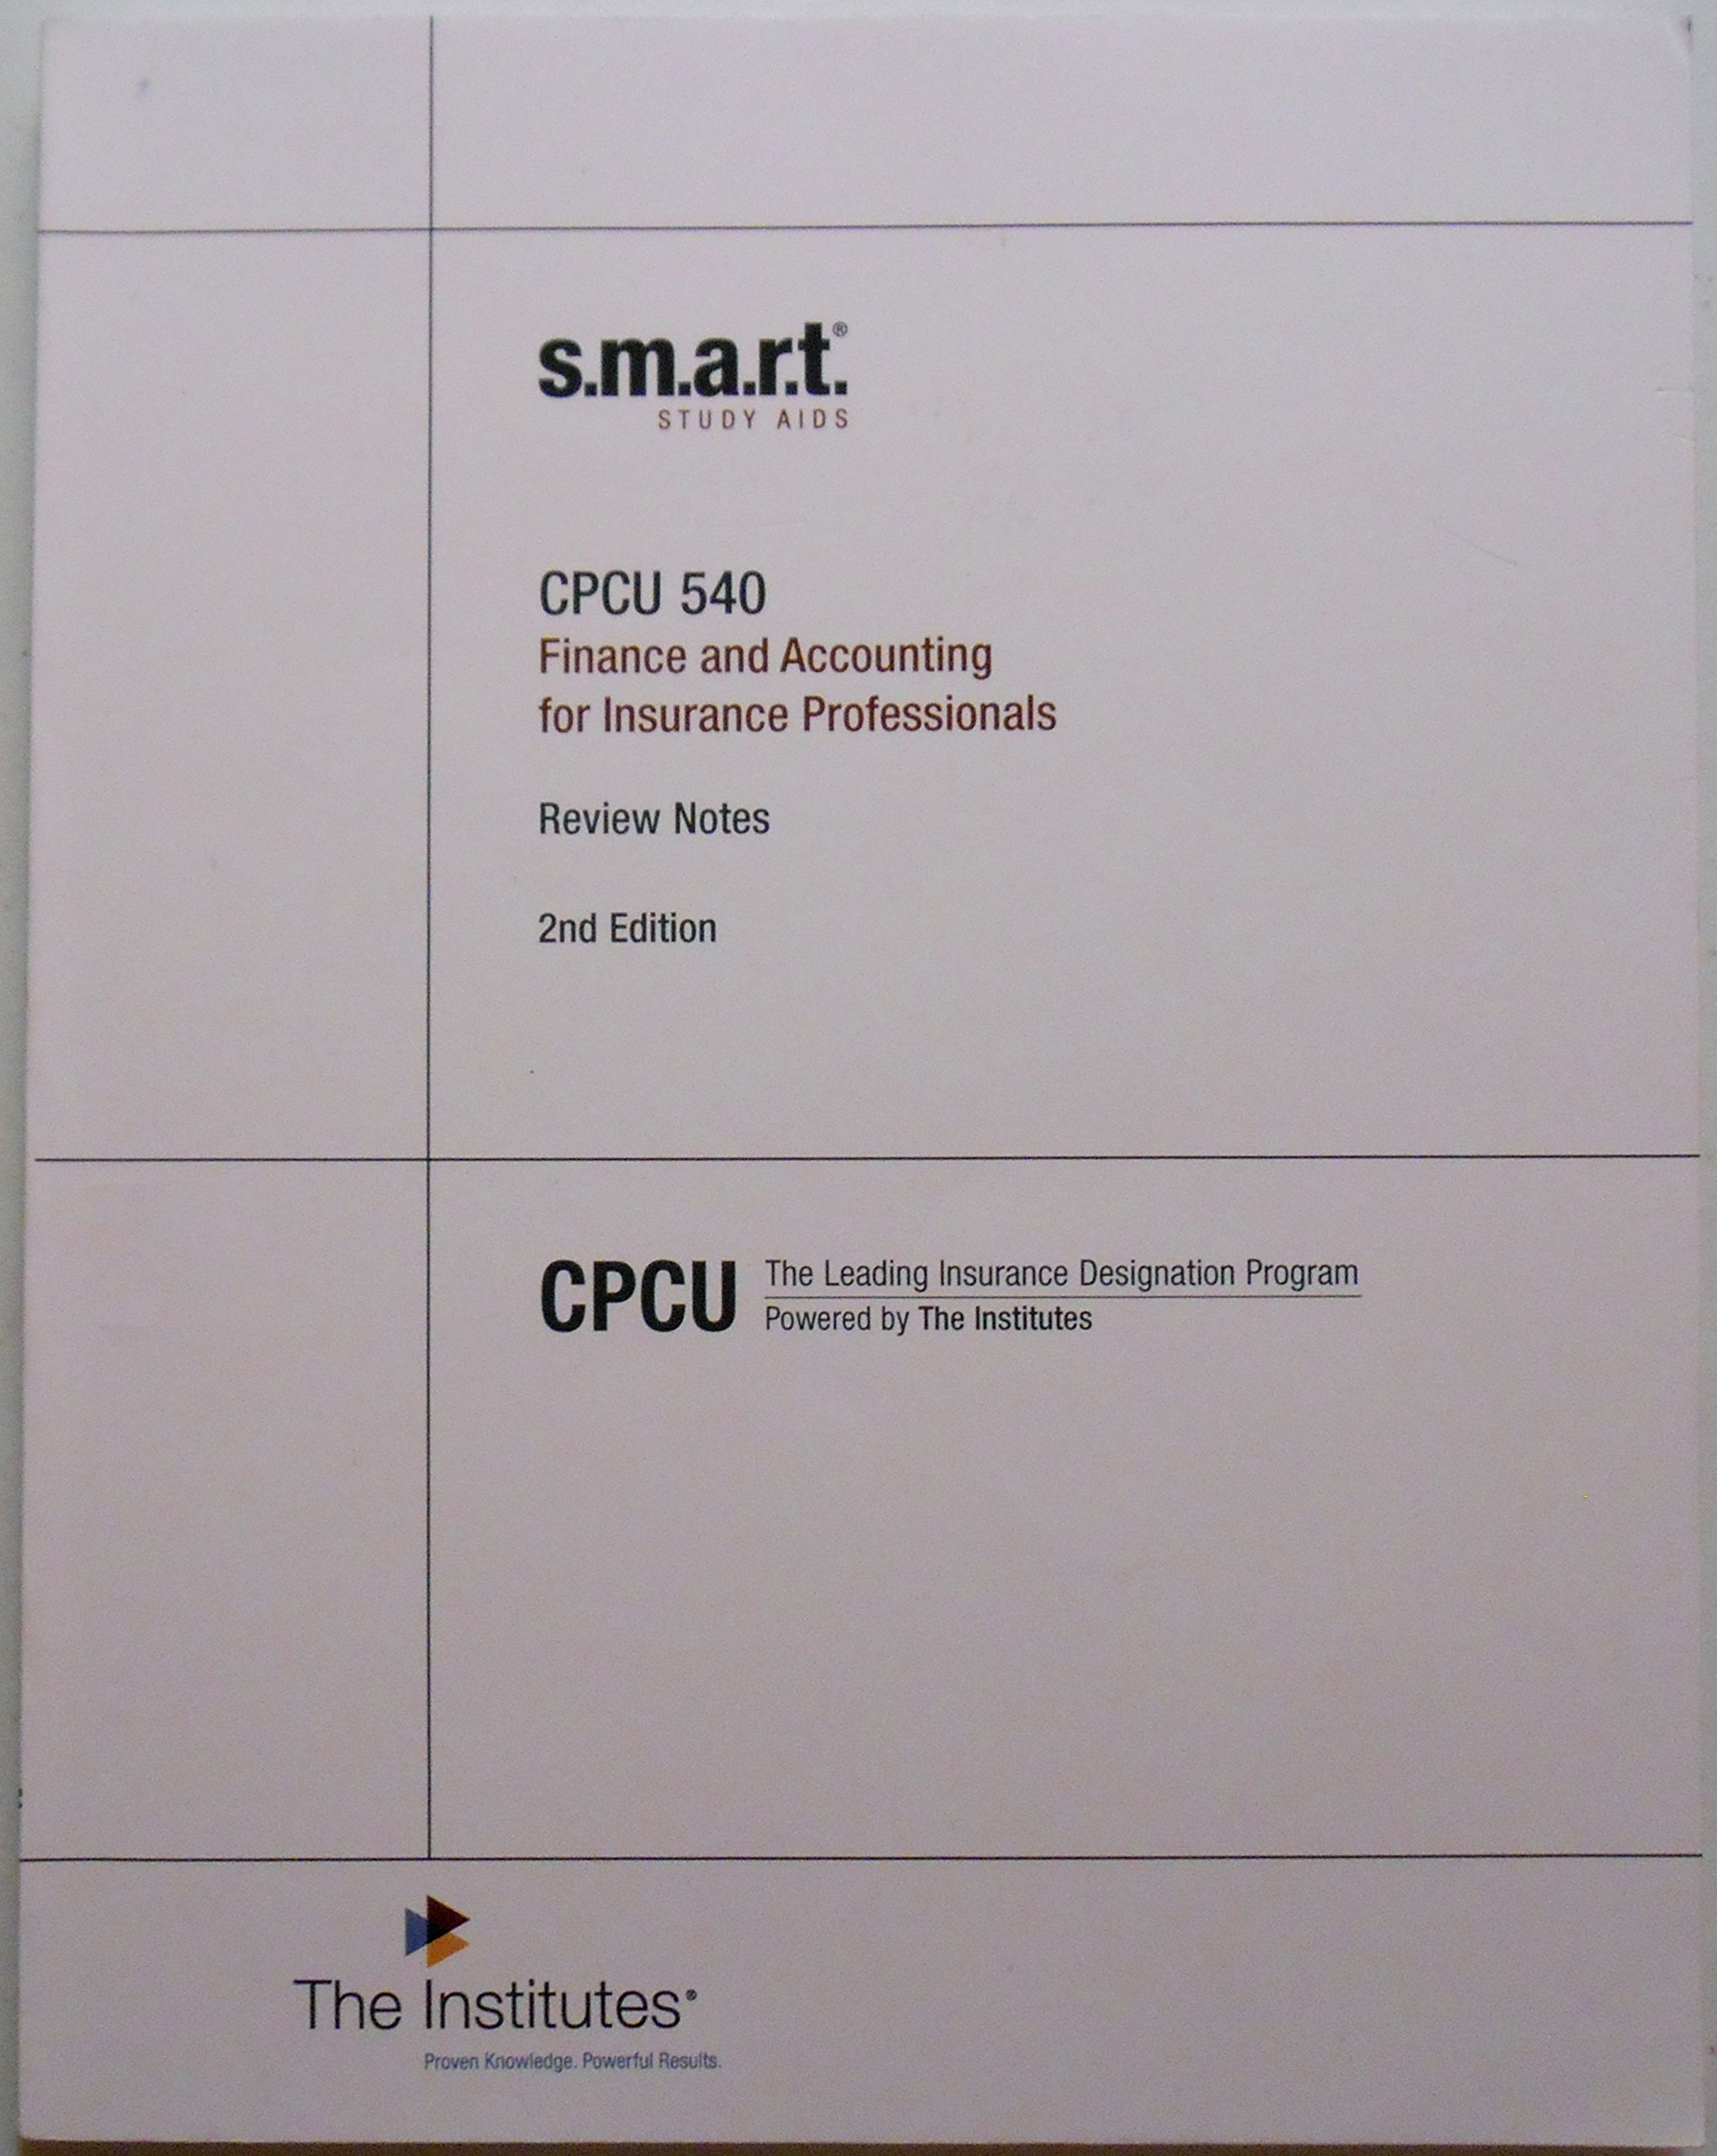 CPCU 540 Finance and Accounting for Insurance Professionals